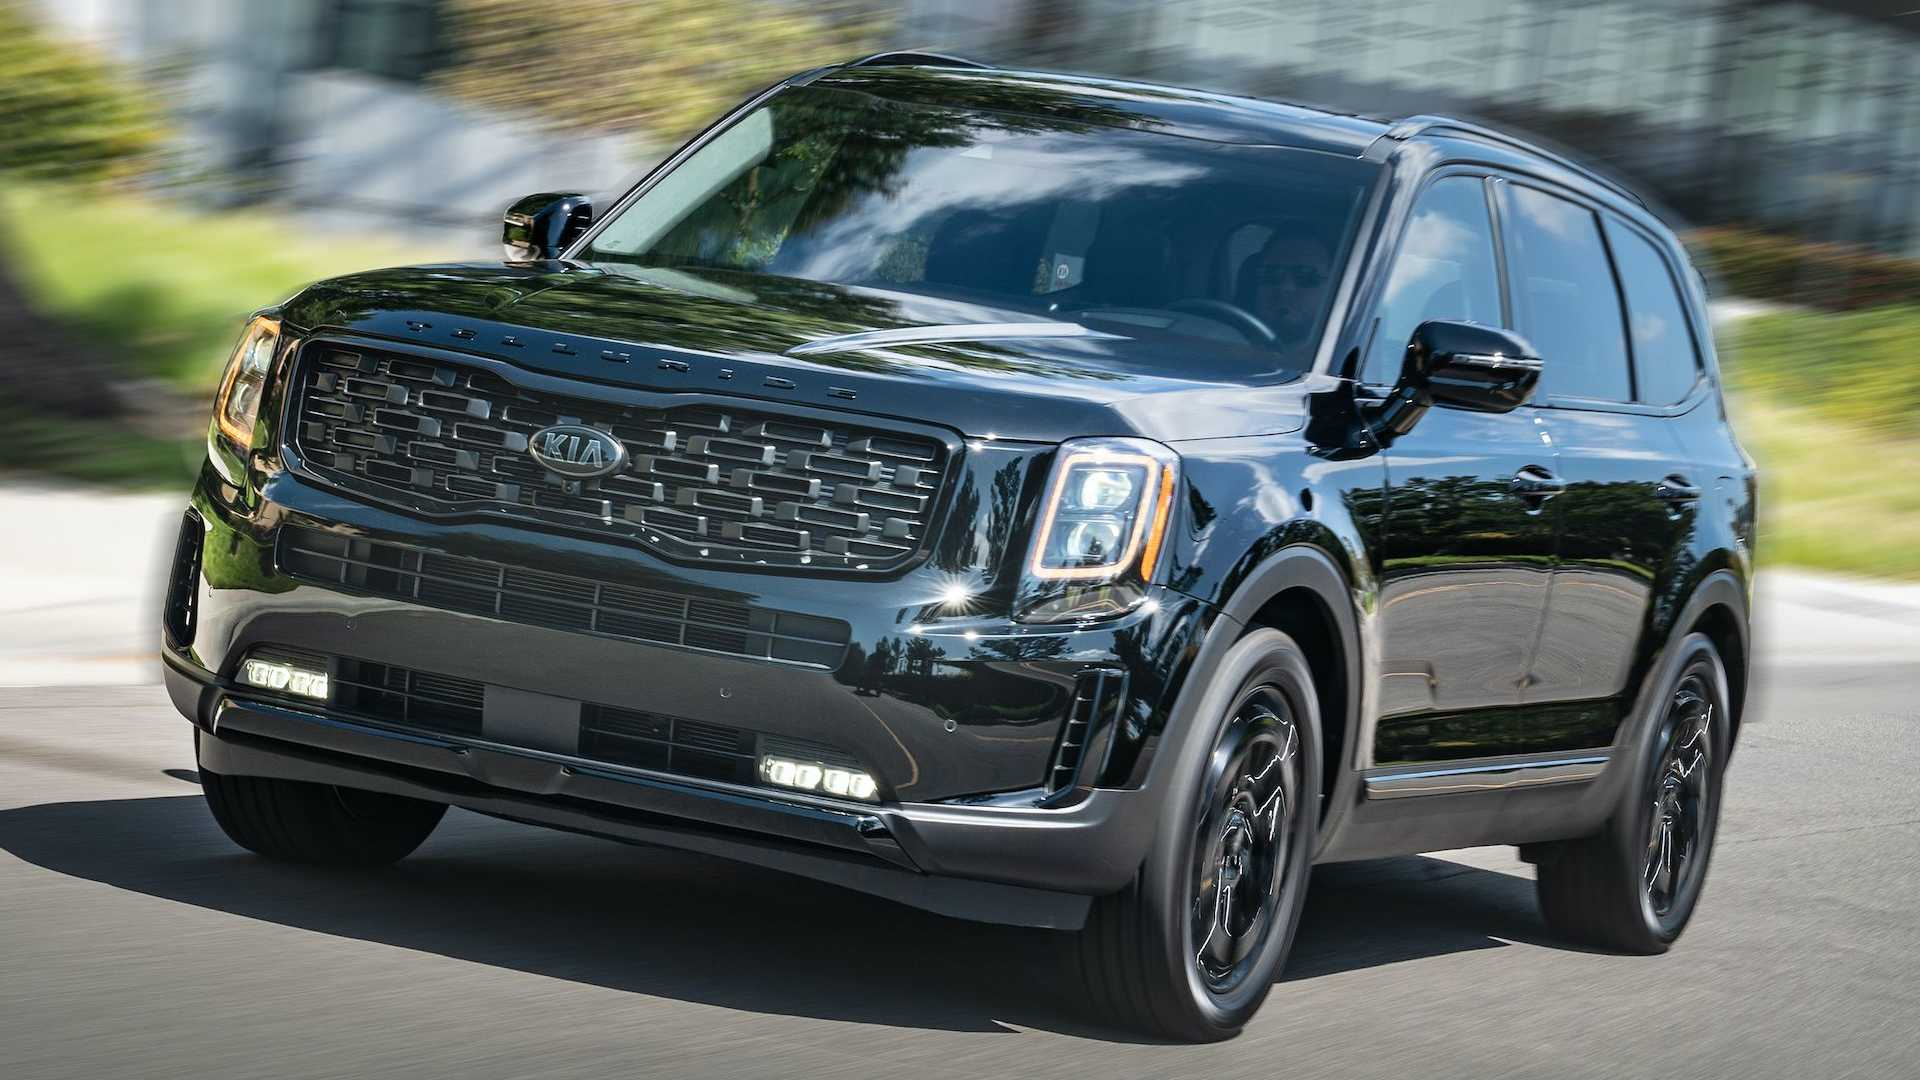 2021 kia telluride nightfall edition debuts in dark trim